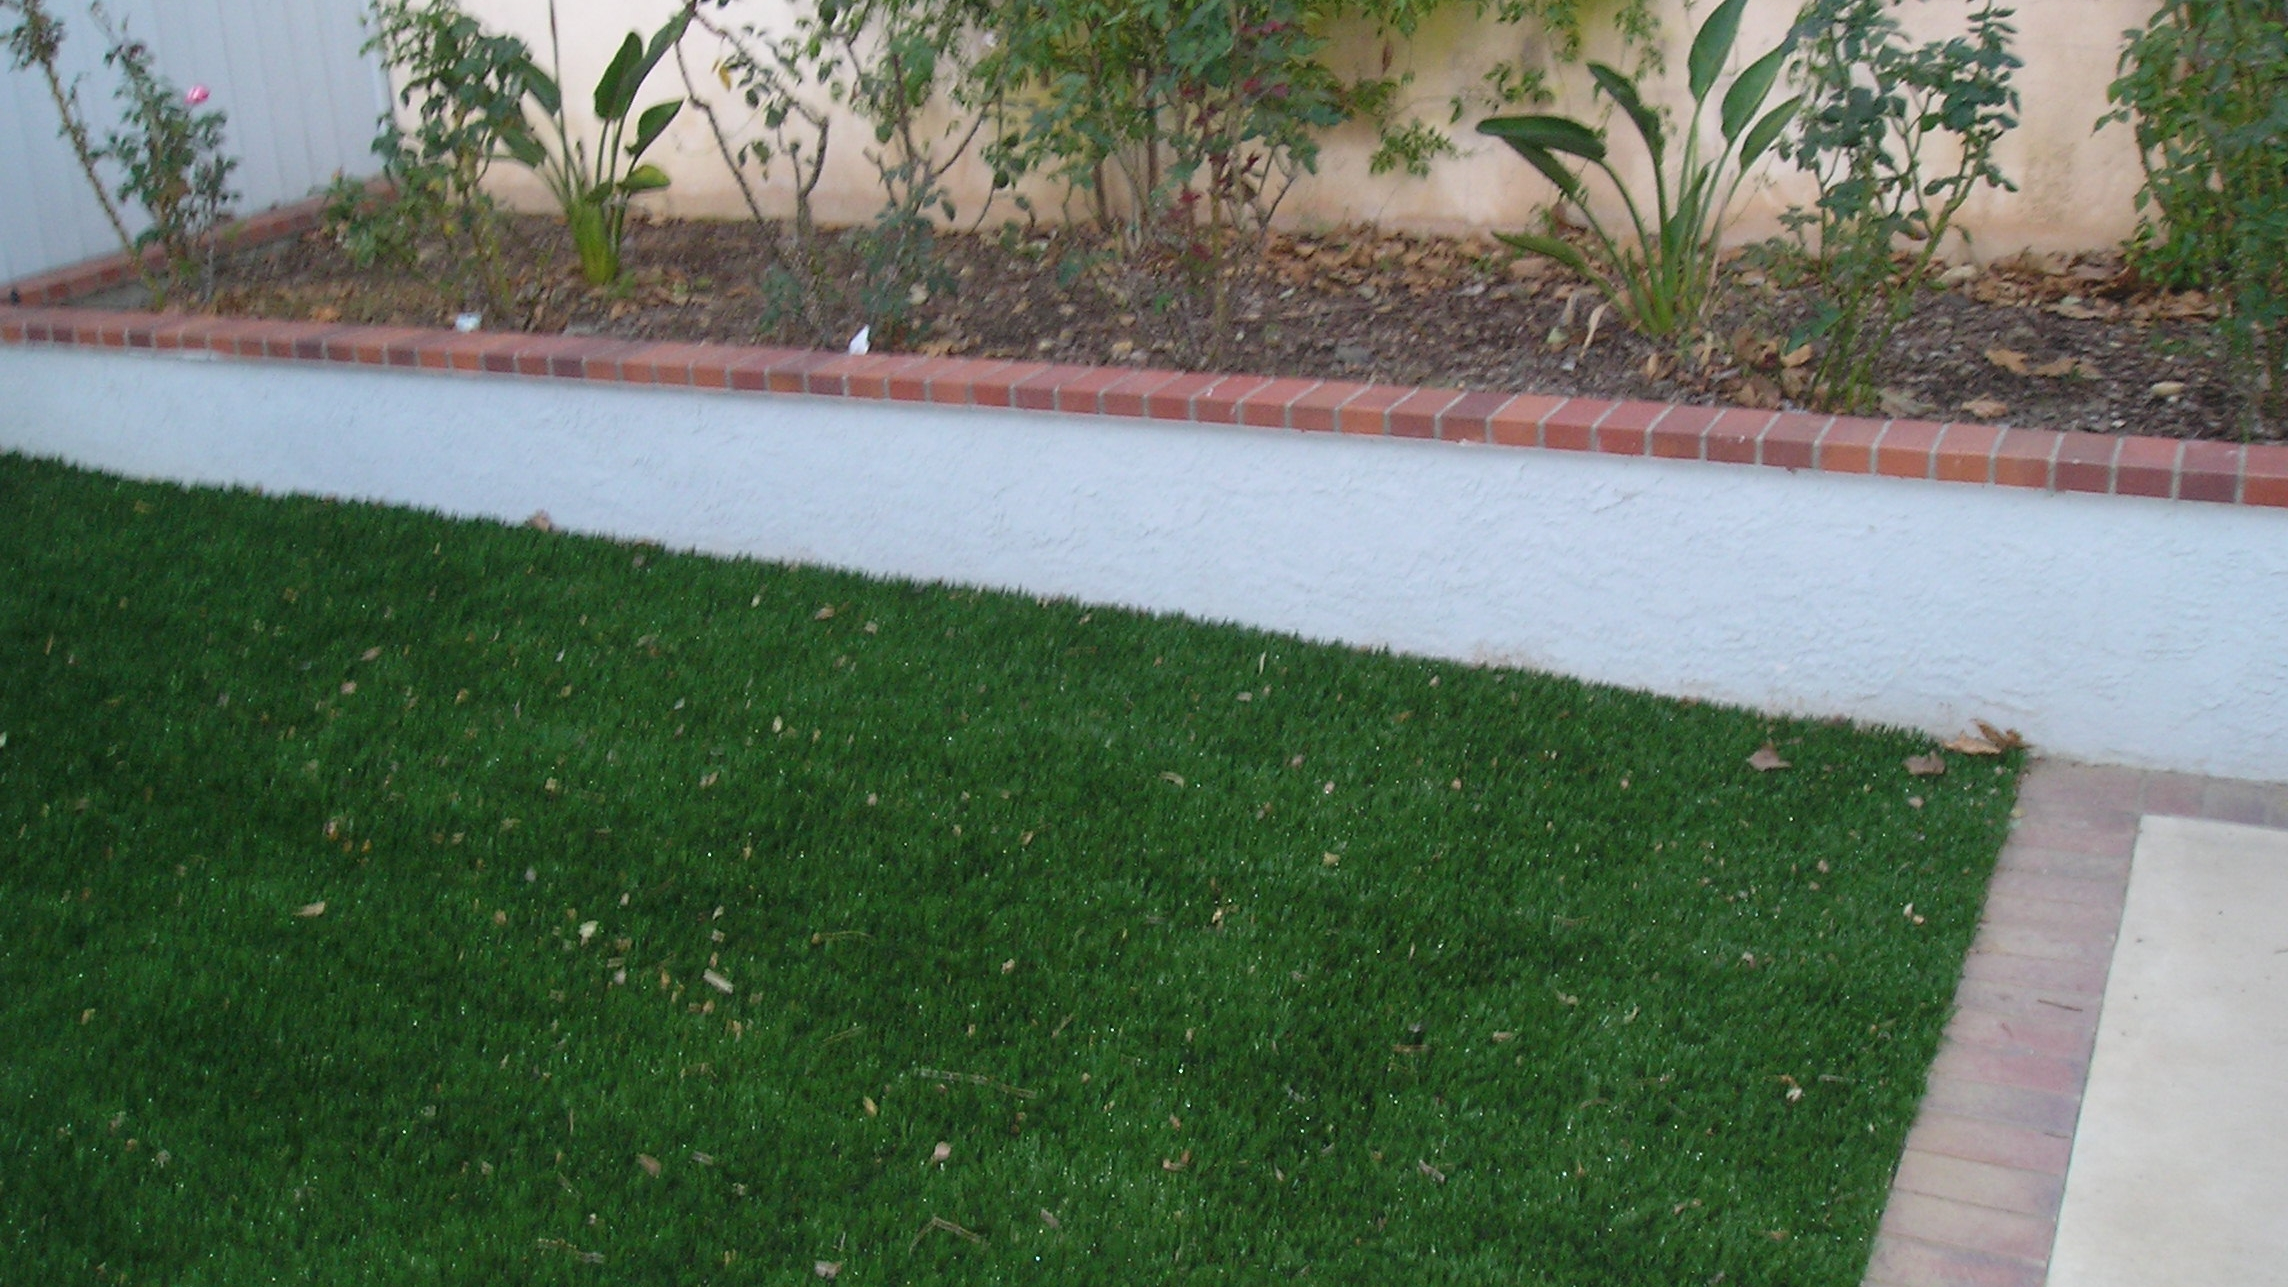 S Blade 50 artificial lawn,synthetic lawn,fake lawn,turf lawn,fake grass lawn,fake green grass,green grass carpet